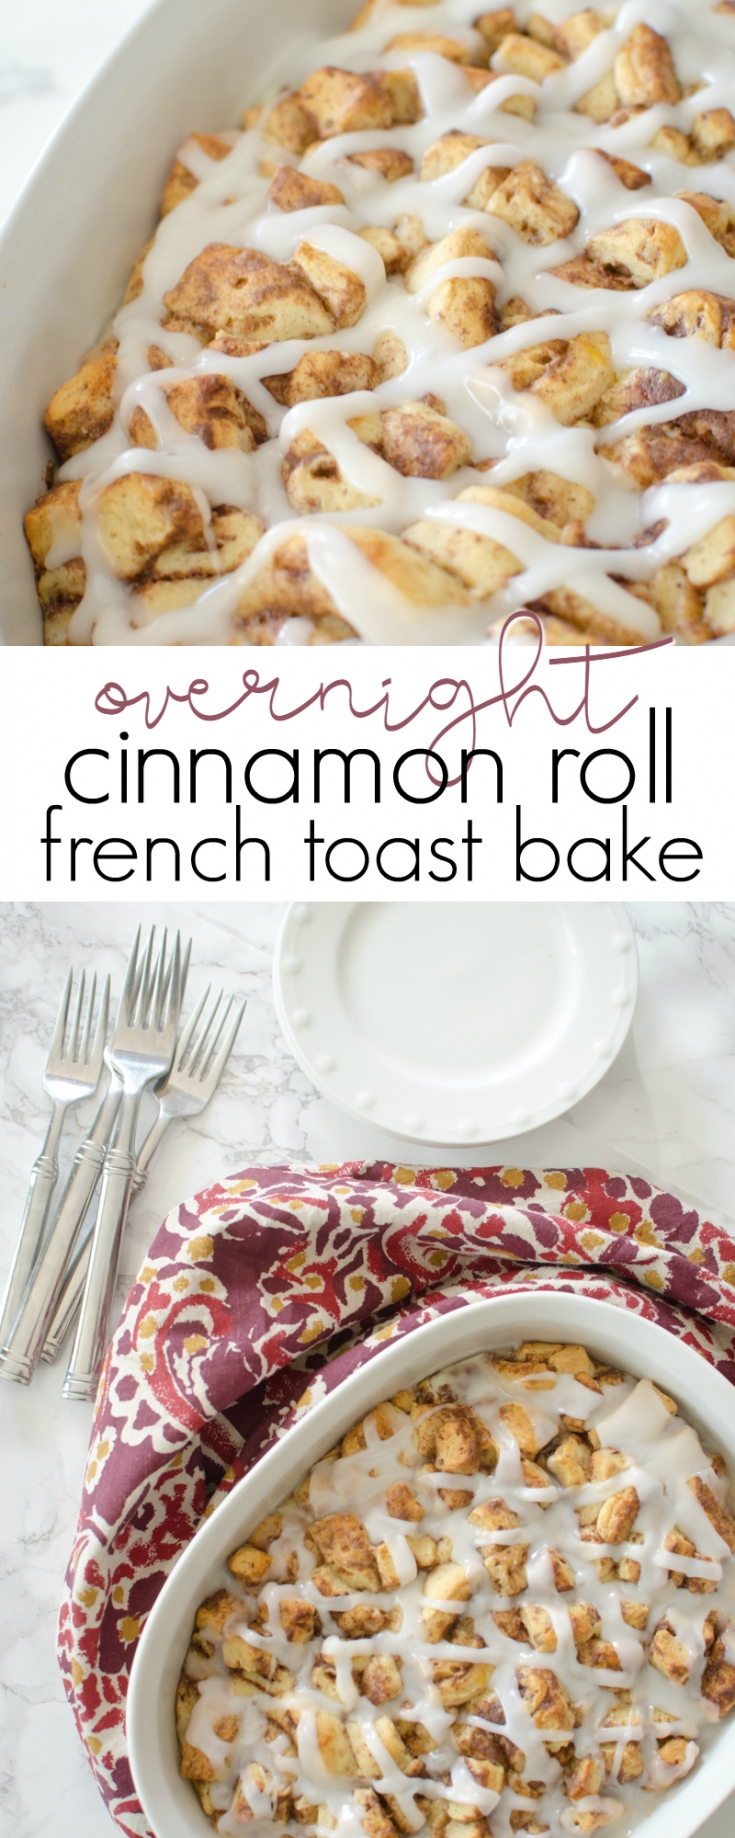 Prep this Cinnamon Roll French toast bake the night before for a no-fuss breakfast treat in the morning!